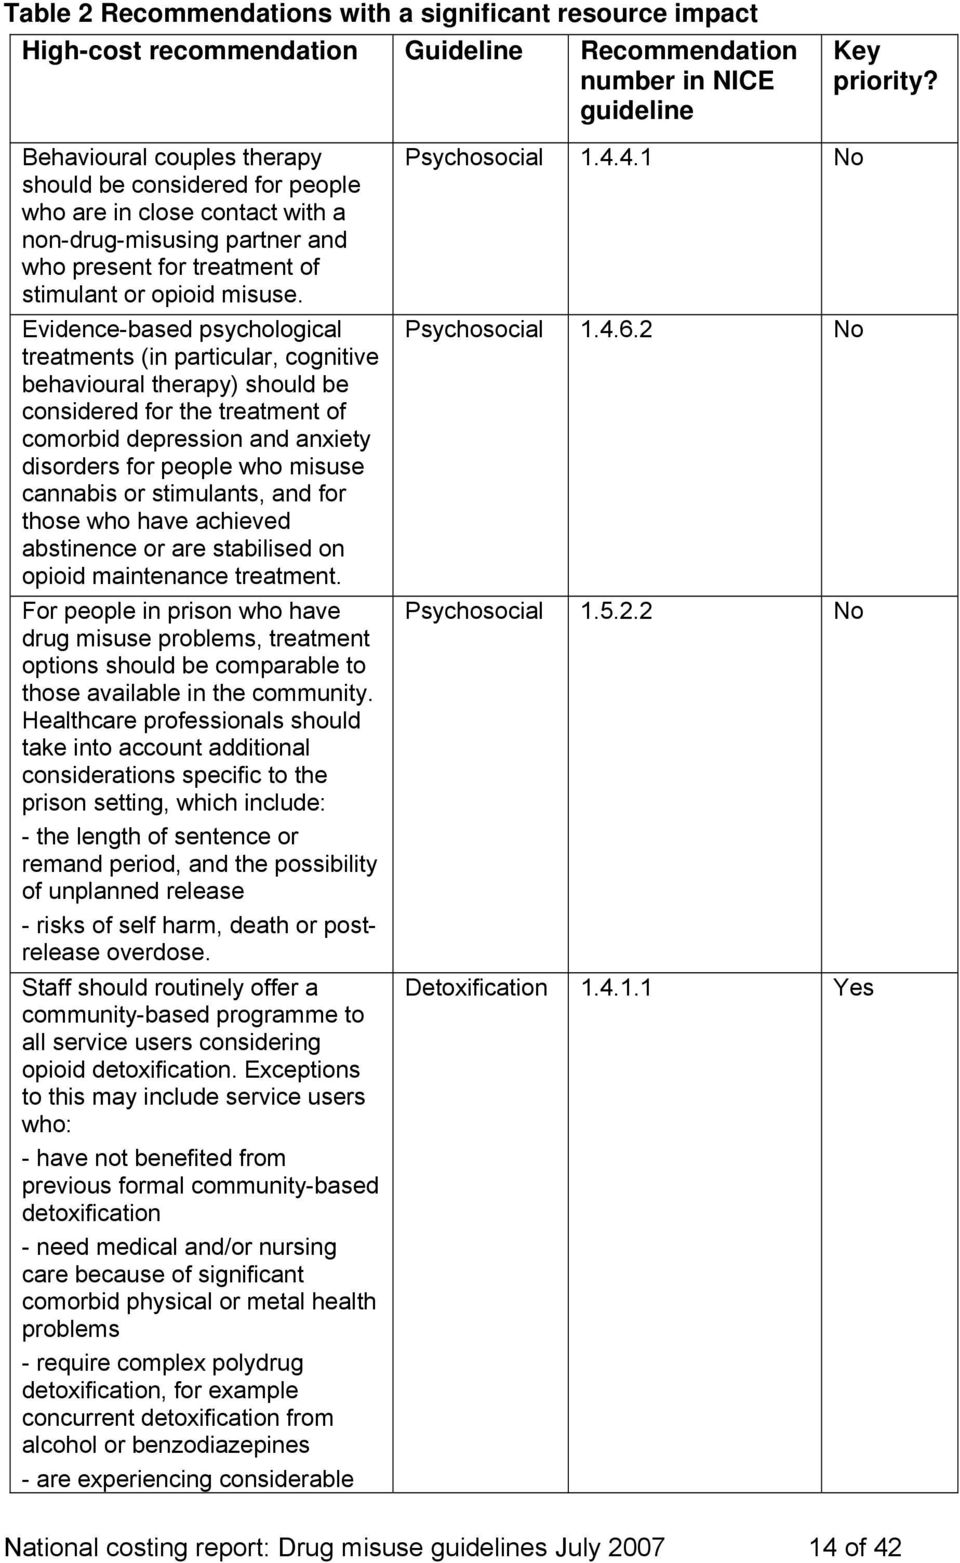 Evidence-based psychological treatments (in particular, cognitive behavioural therapy) should be considered for the treatment of comorbid depression and anxiety disorders for people who misuse